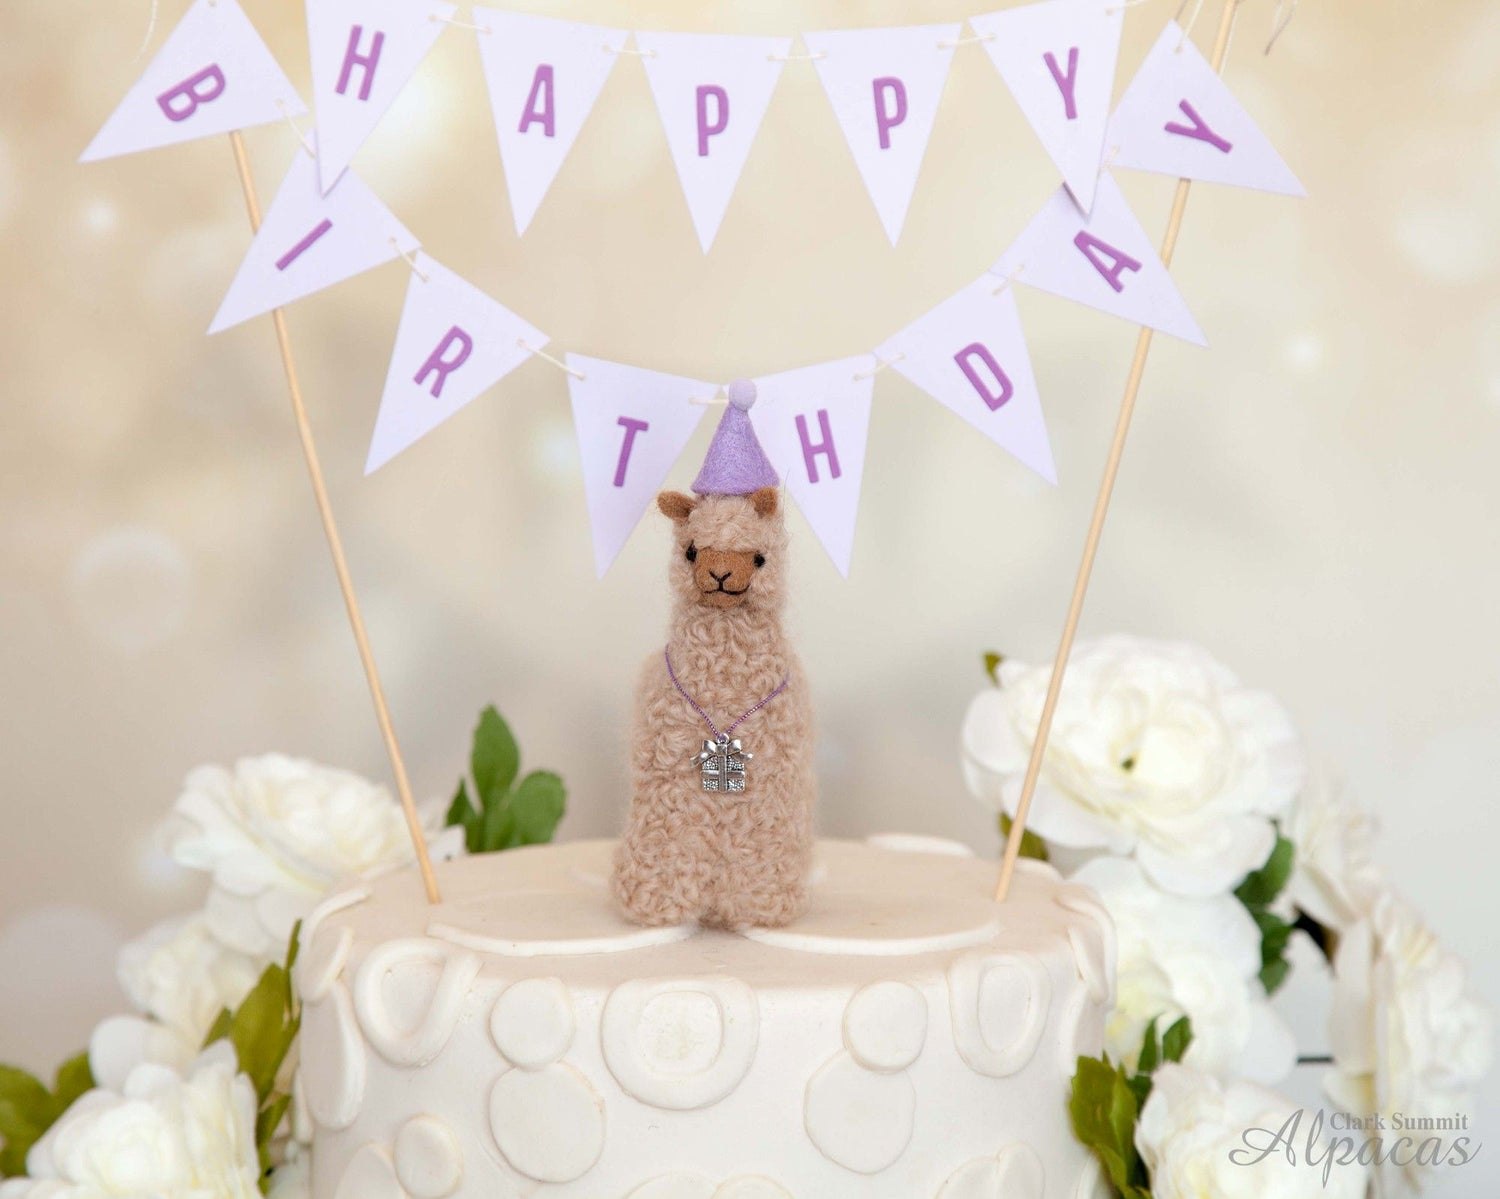 Alpaca Birthday - Unique Present for Llama Lovers - Customized Party Hat, Charms - Real Fiber